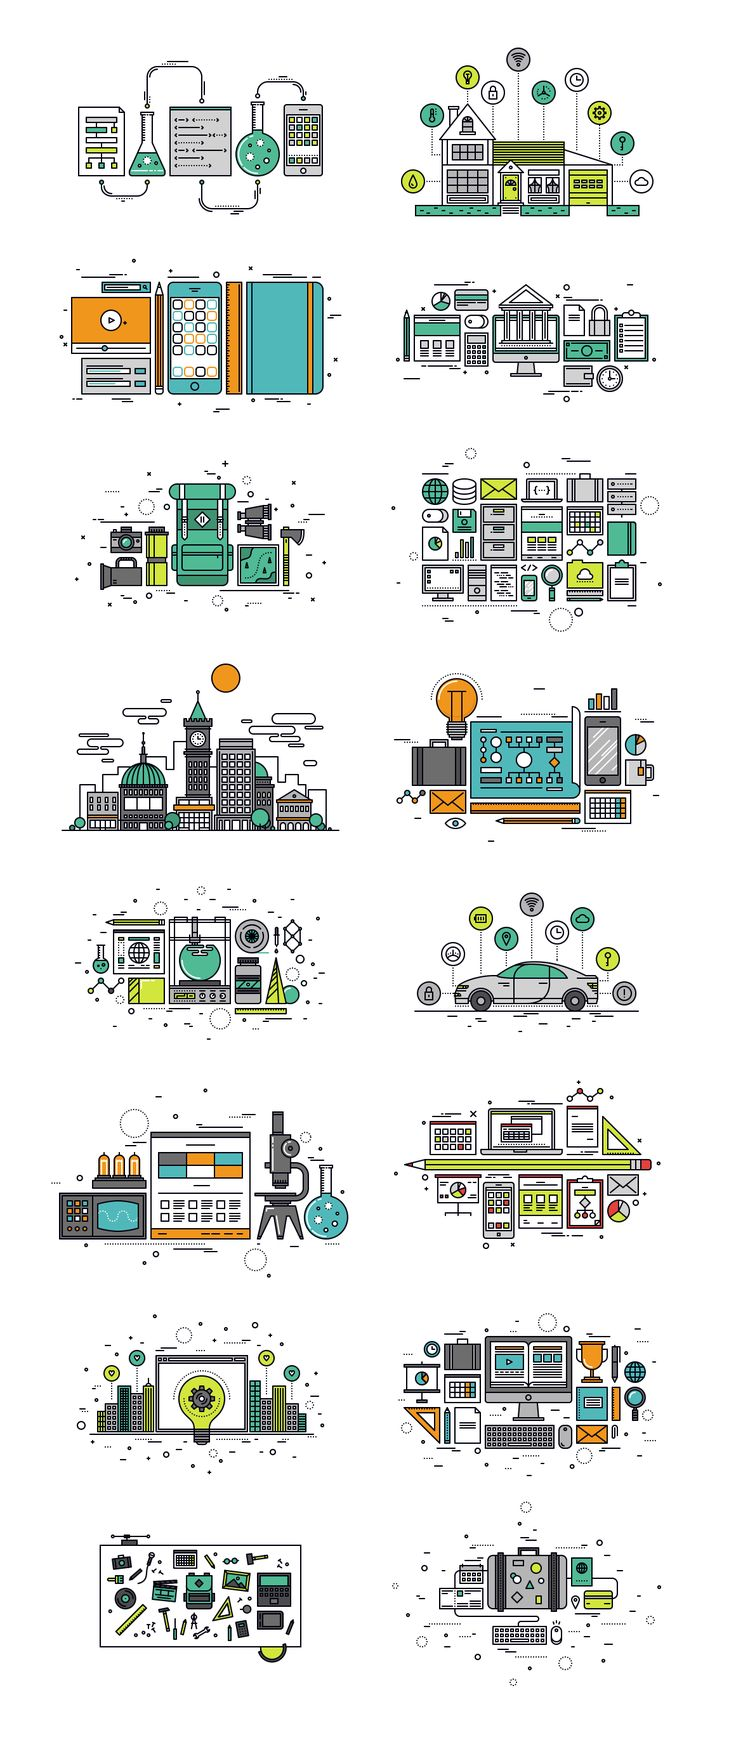 Thinline Illustrations Collection by Bloomua on @creativemarket